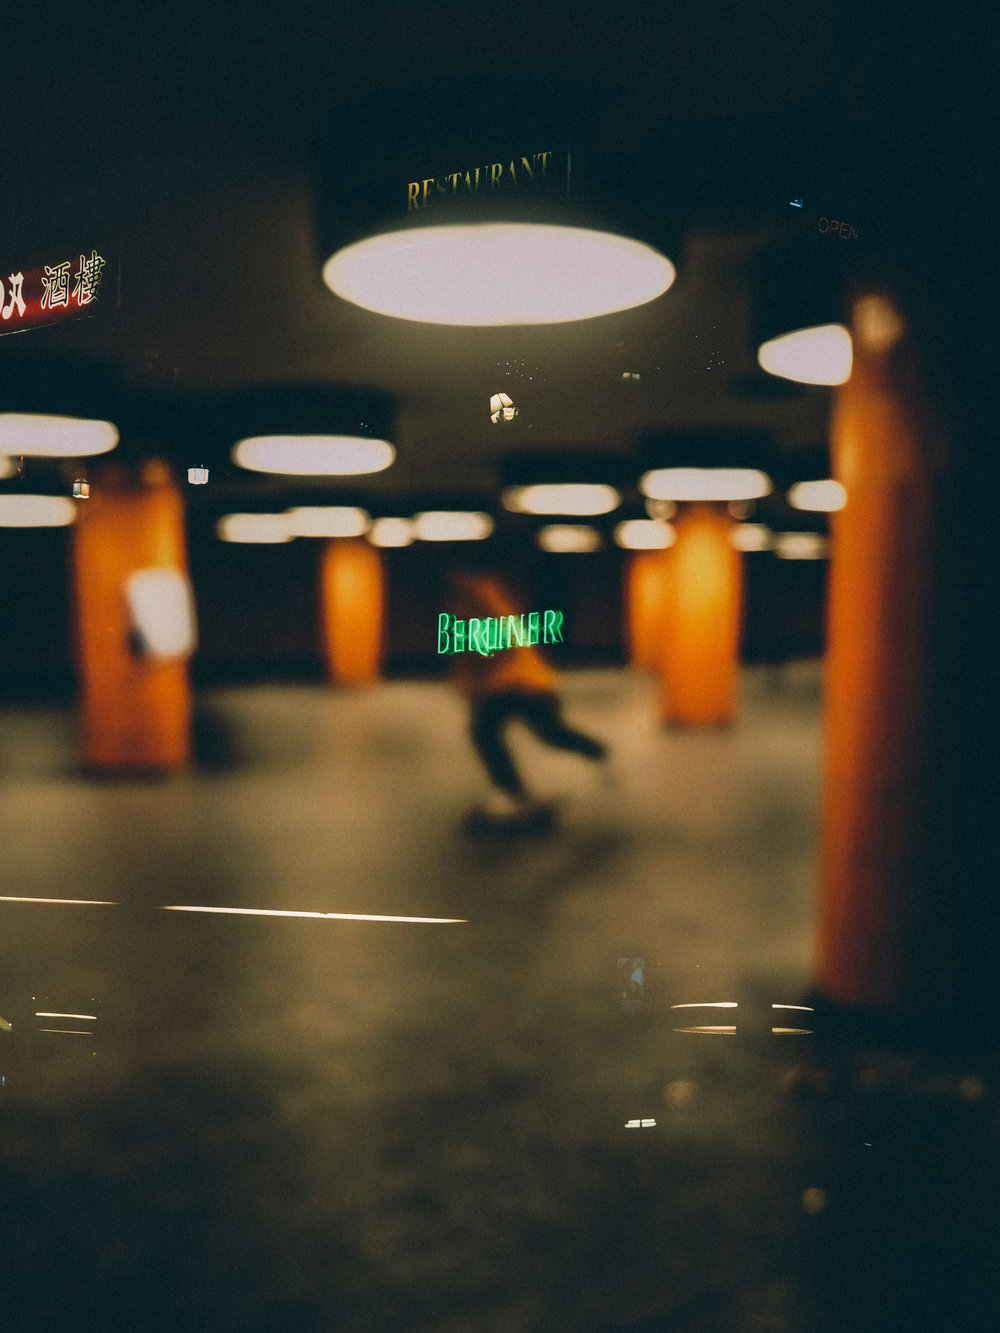 berlin-skateboard-u-bahn-underground-double-exposure